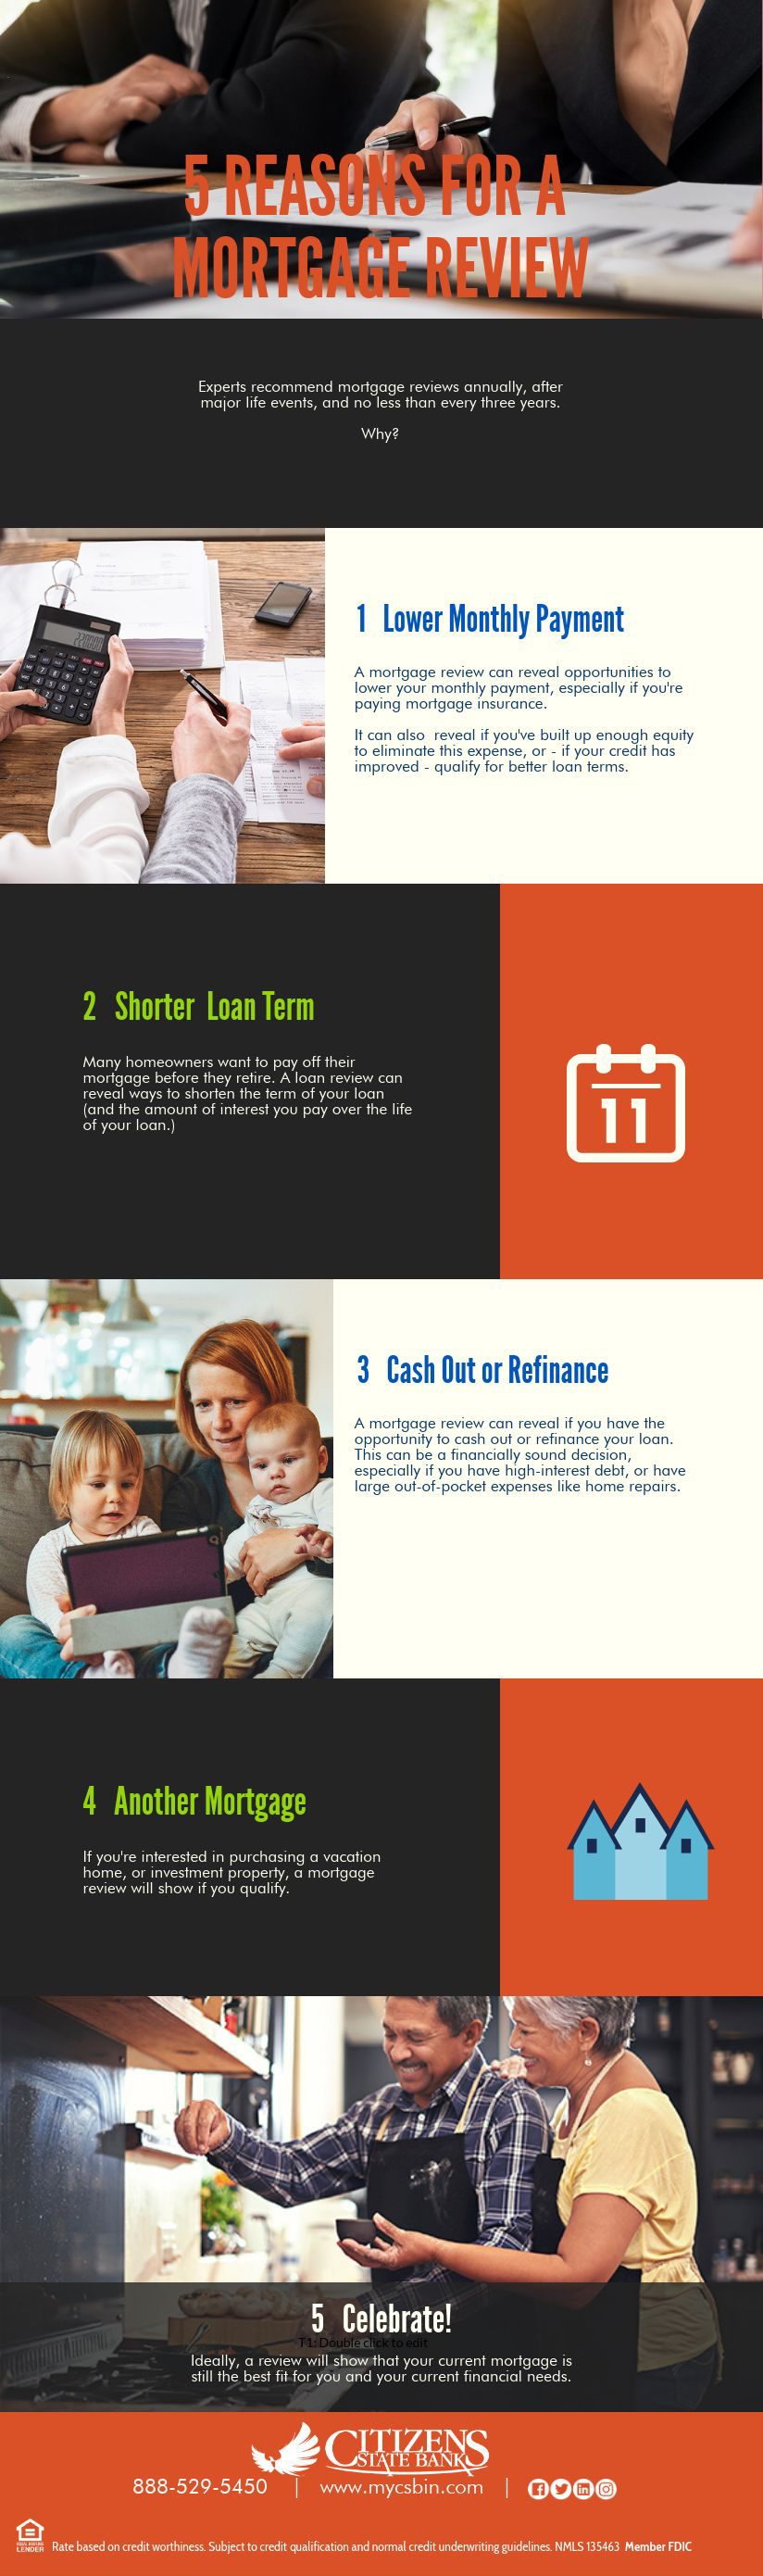 5 Reasons for a Mortgage Loan Review